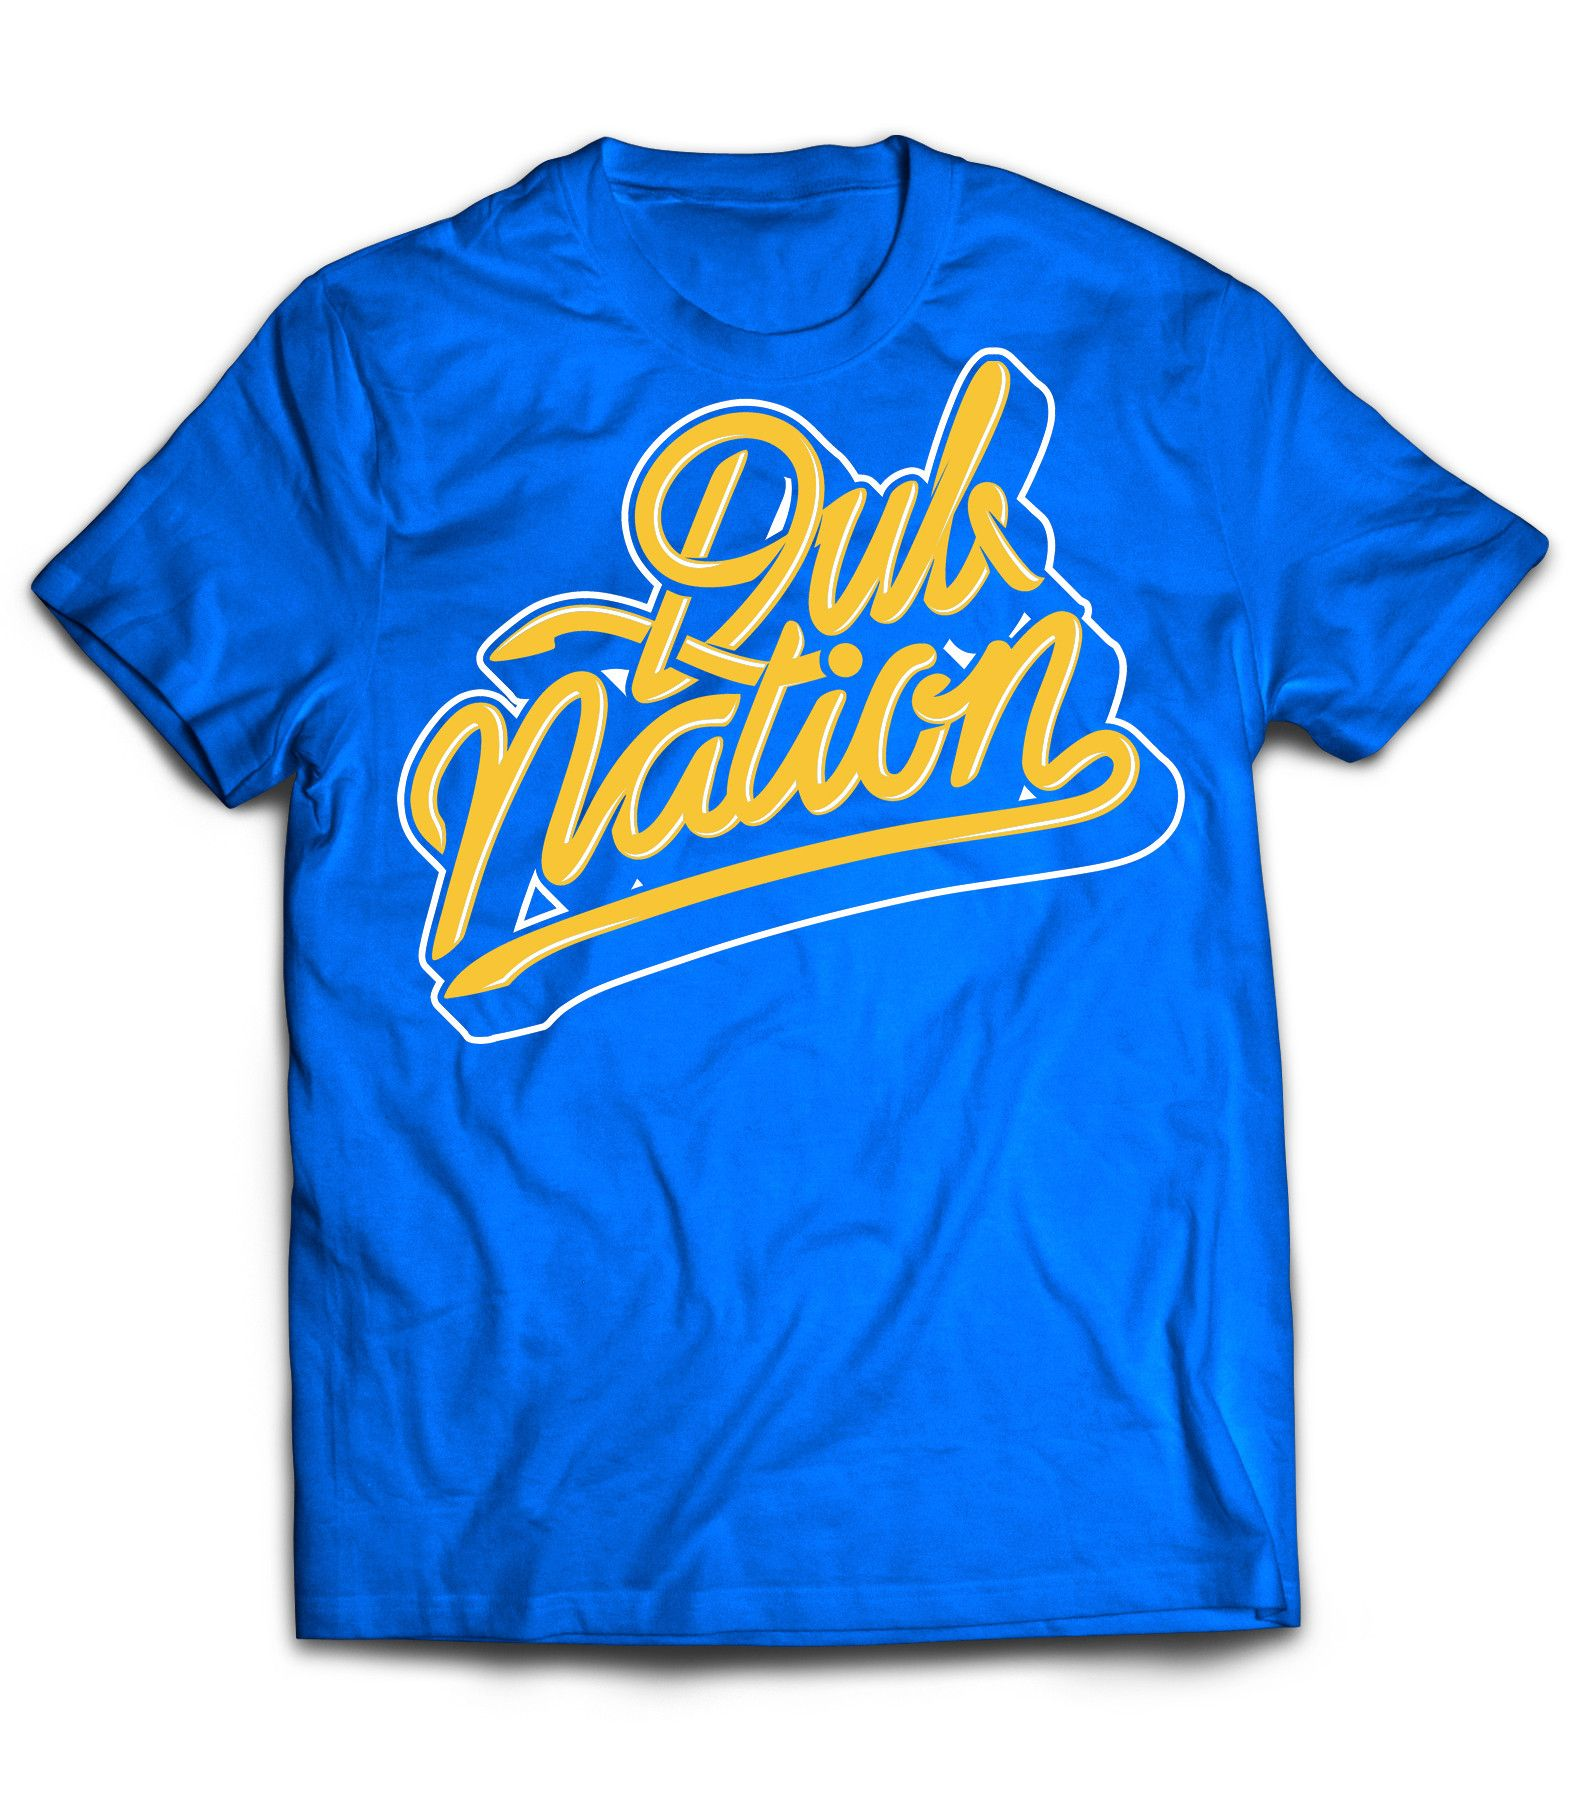 ce398426690 Dub Nation T-Shirt